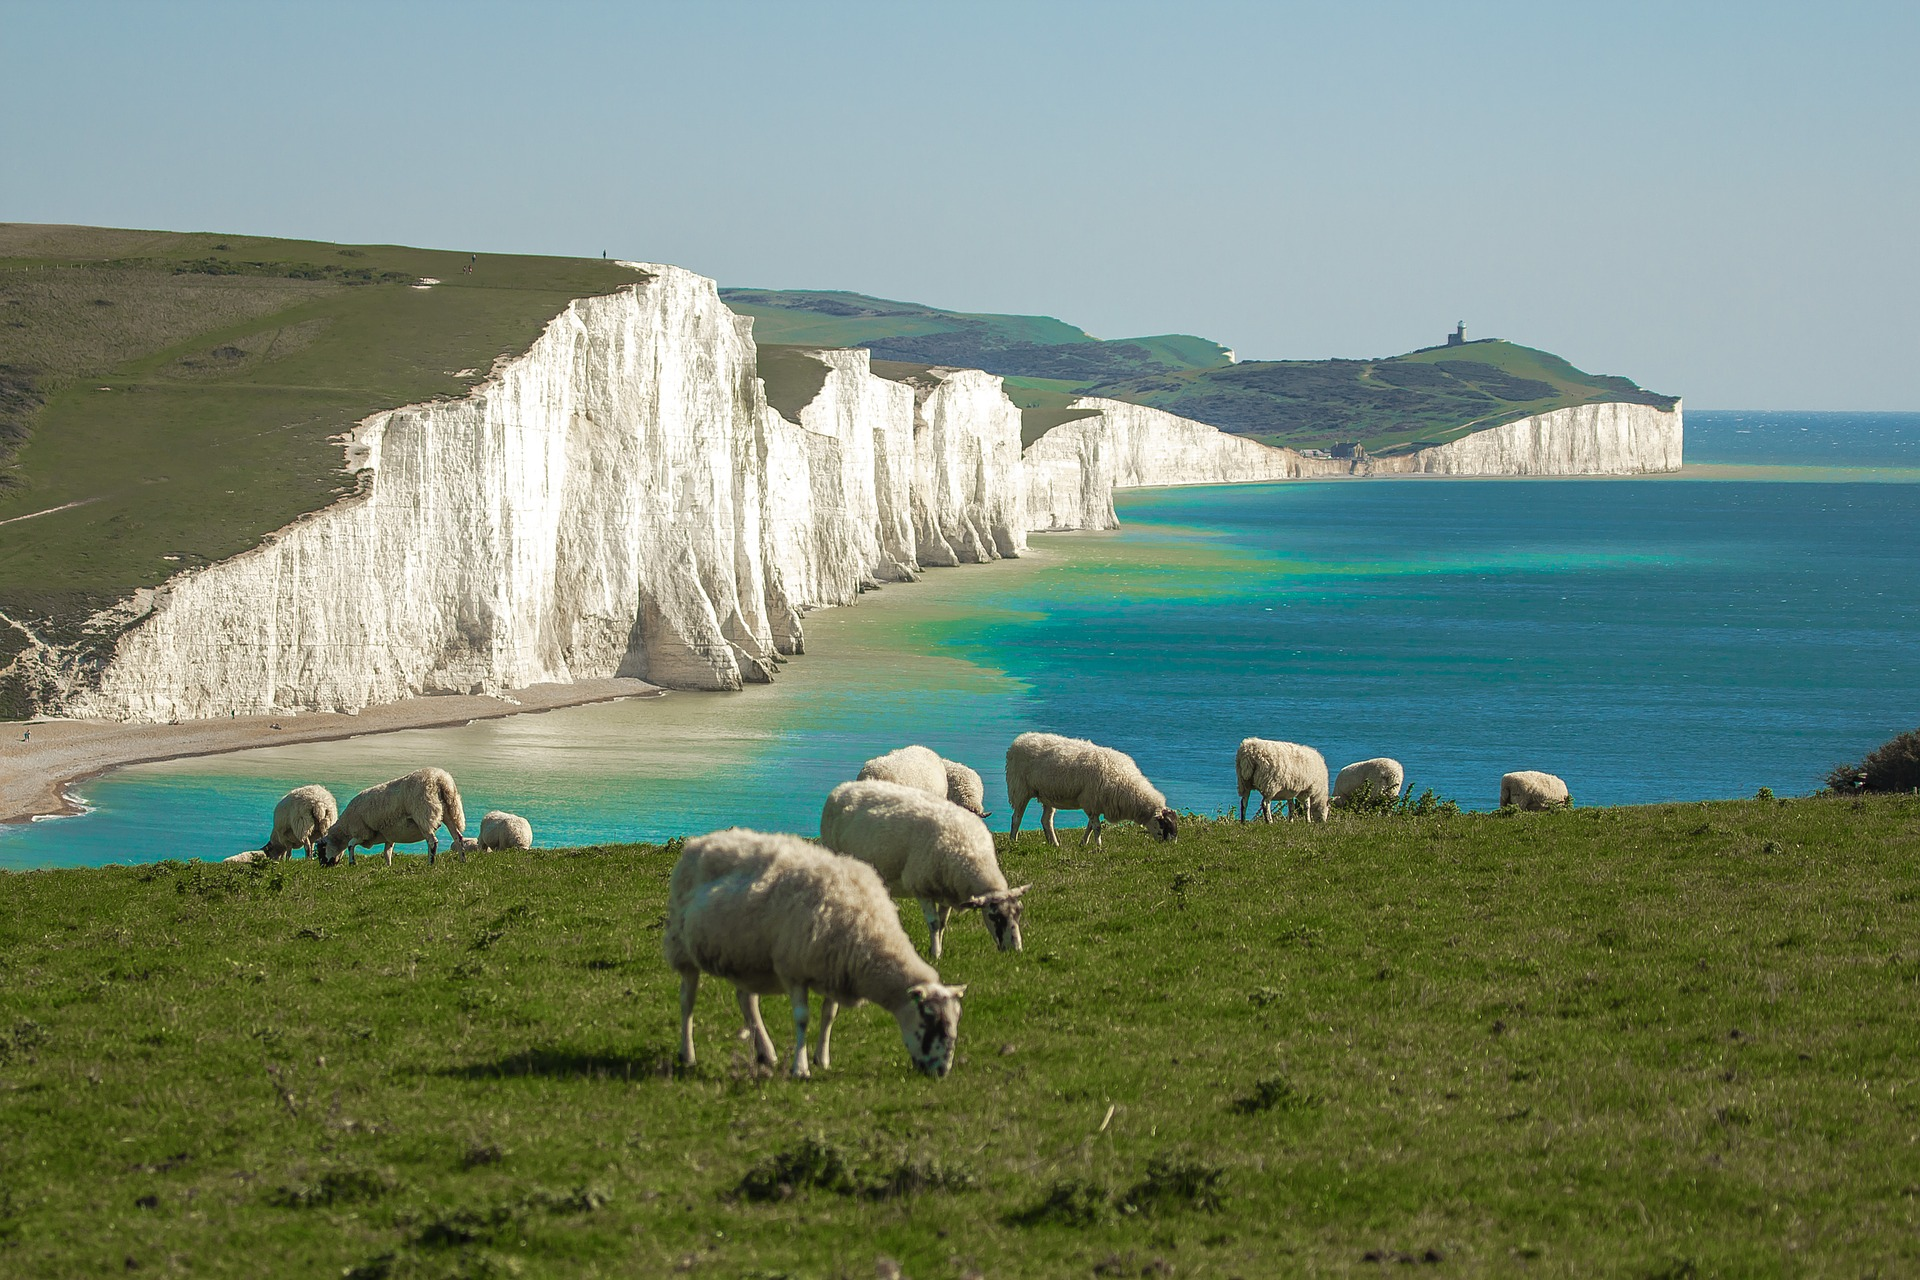 Sheep Grazing by the Ocean